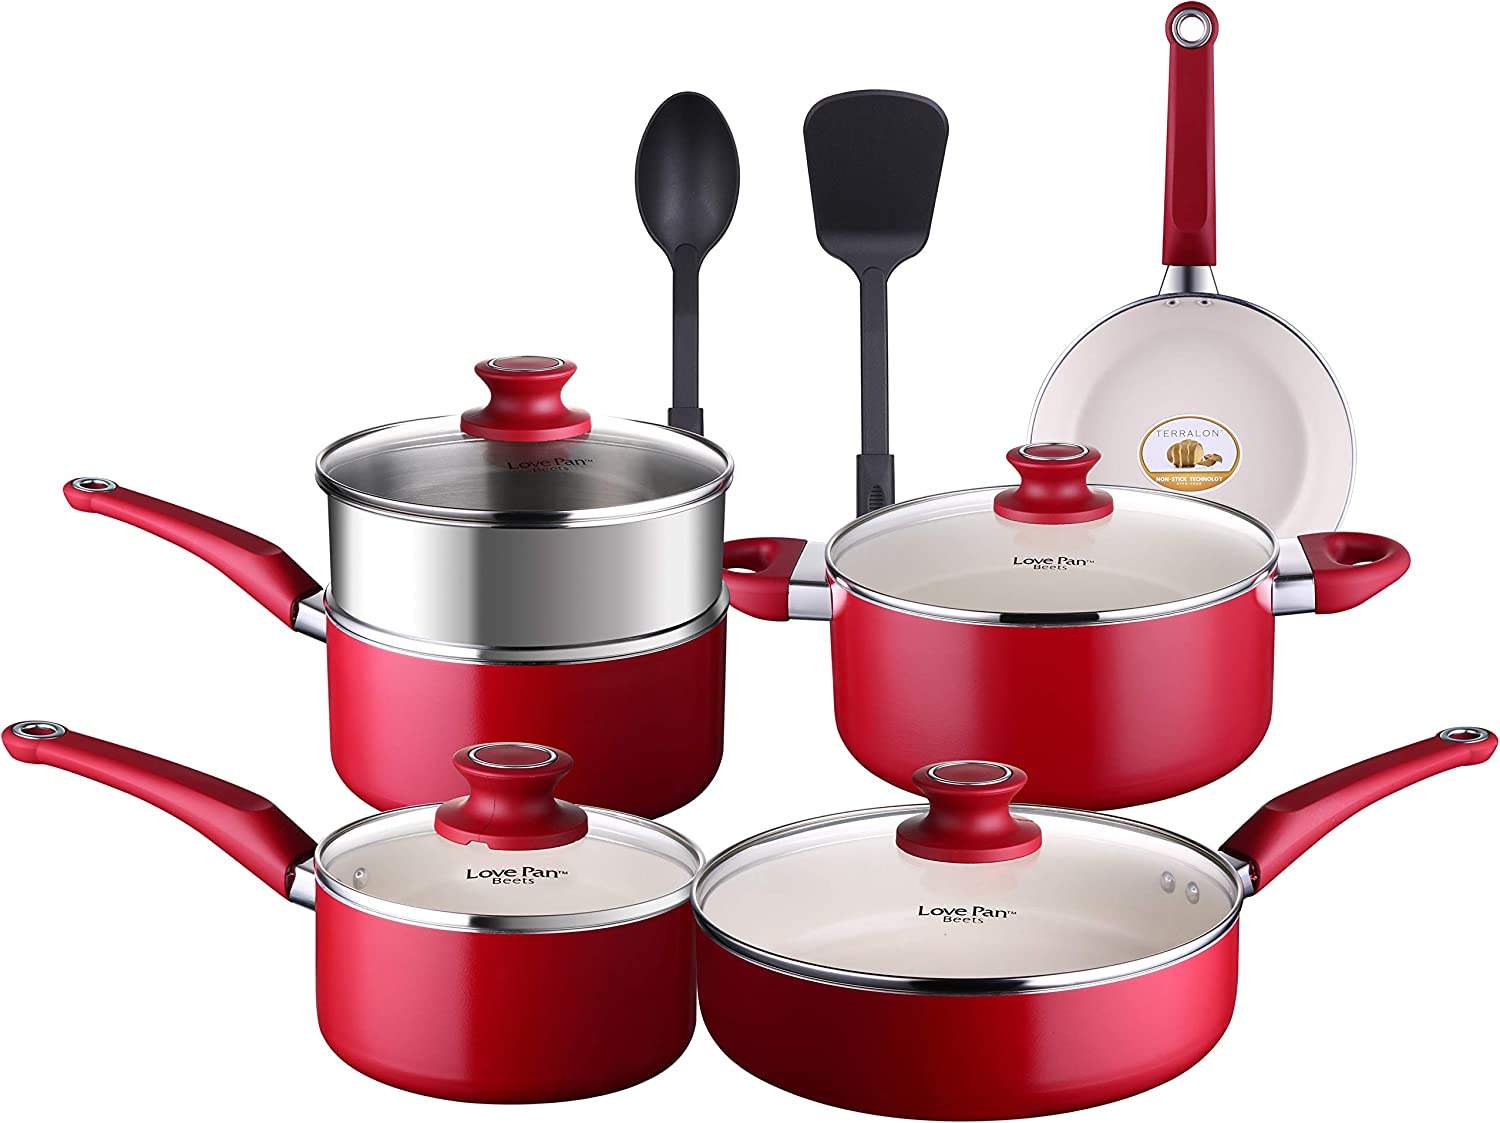 What is the best and safest type of cookware?